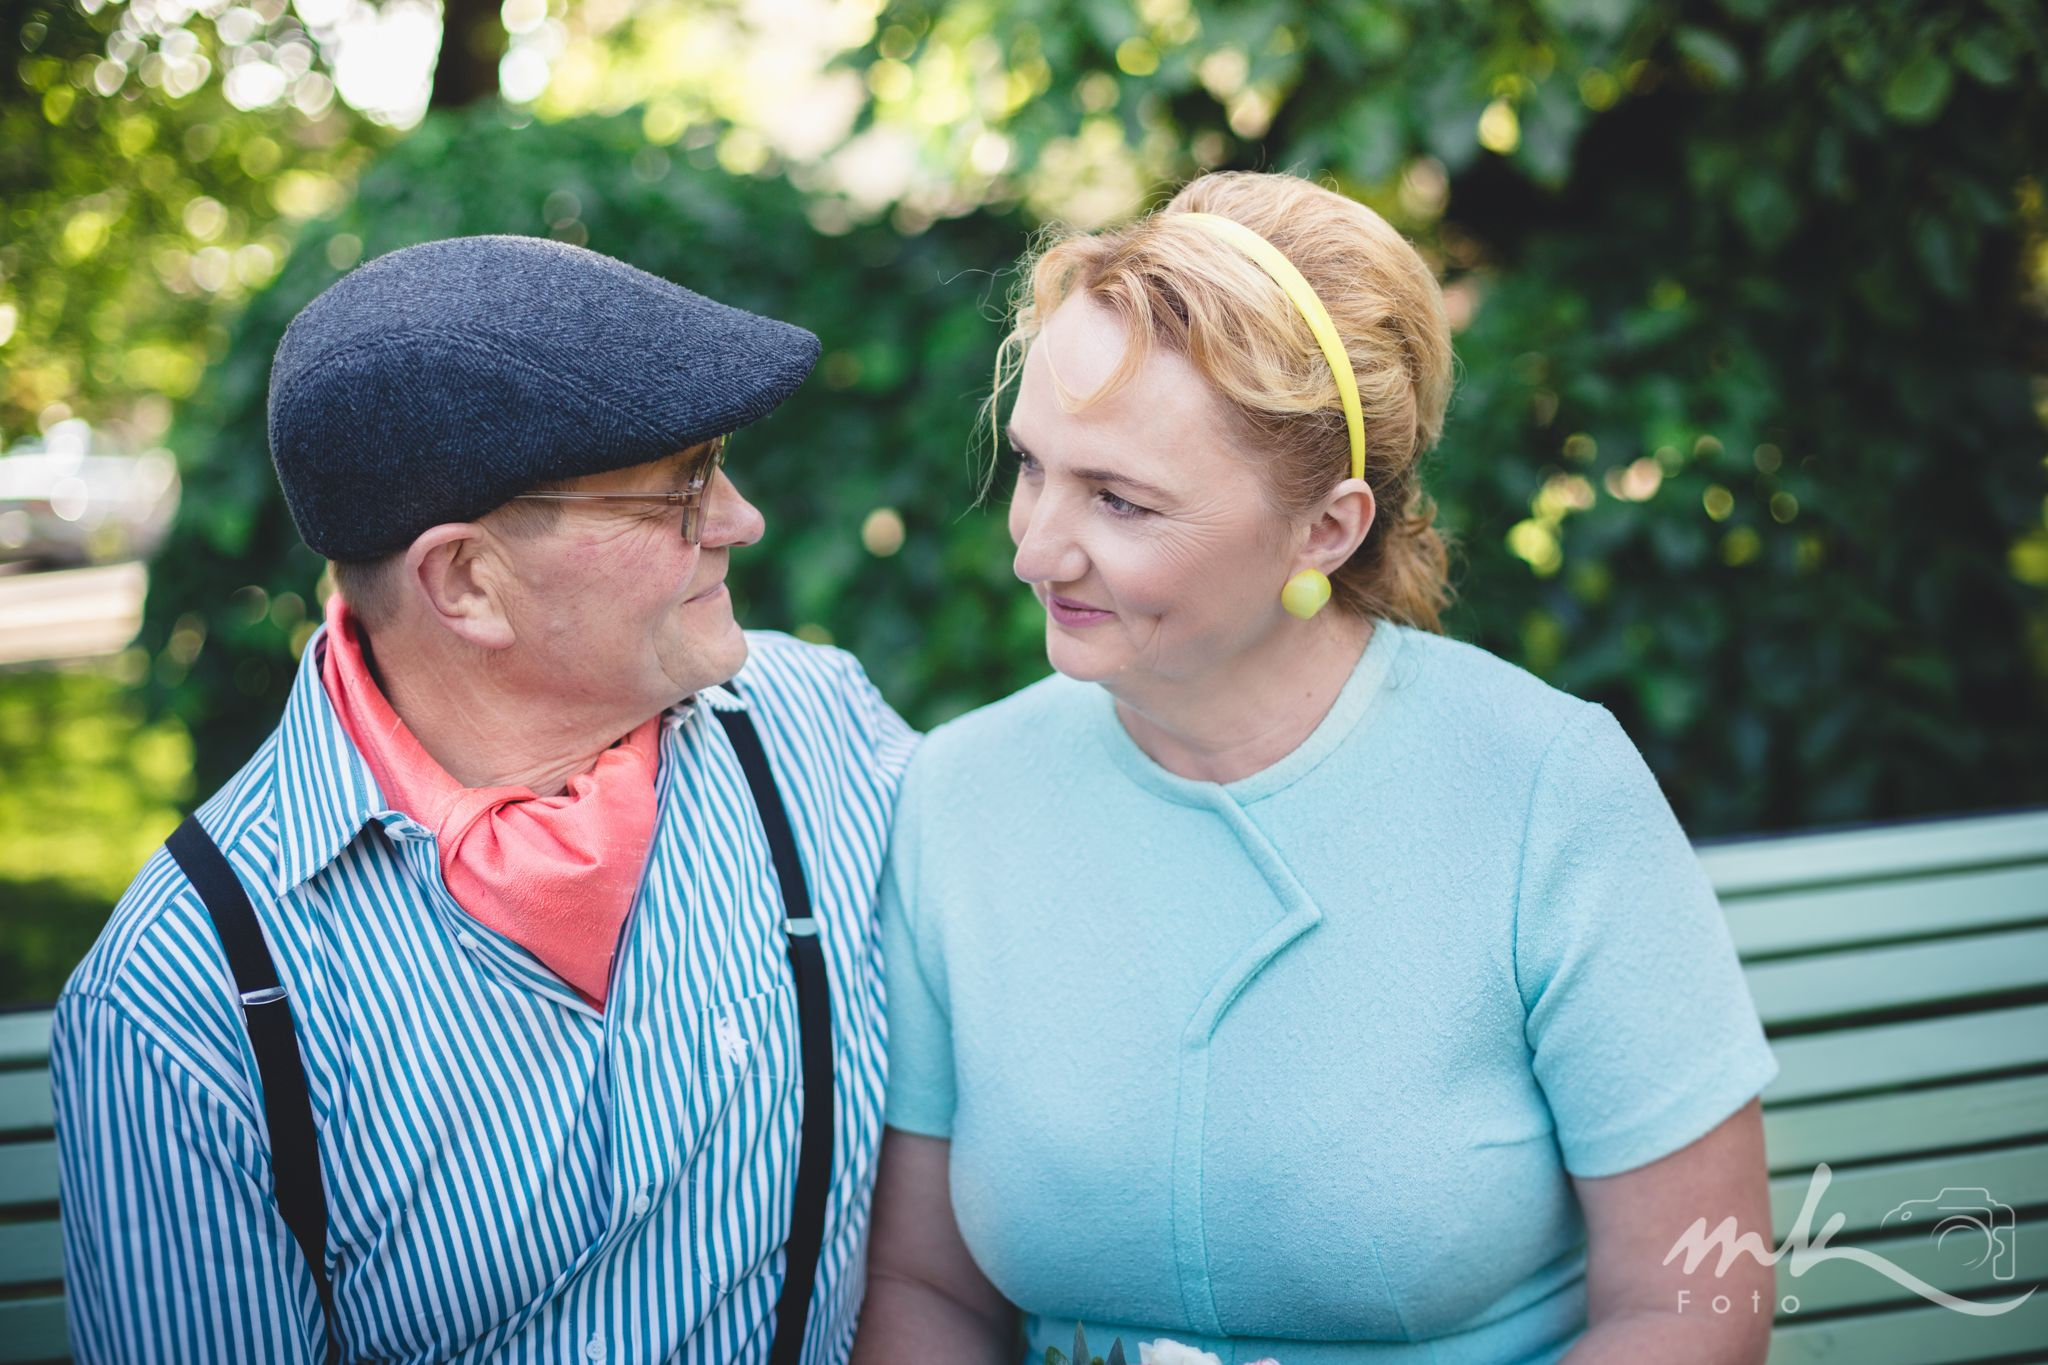 Couples photo session for Wedding anniversary in Pärnu, middle aged couple photo ideas, love forever, author Maaris Puust from MK Foto